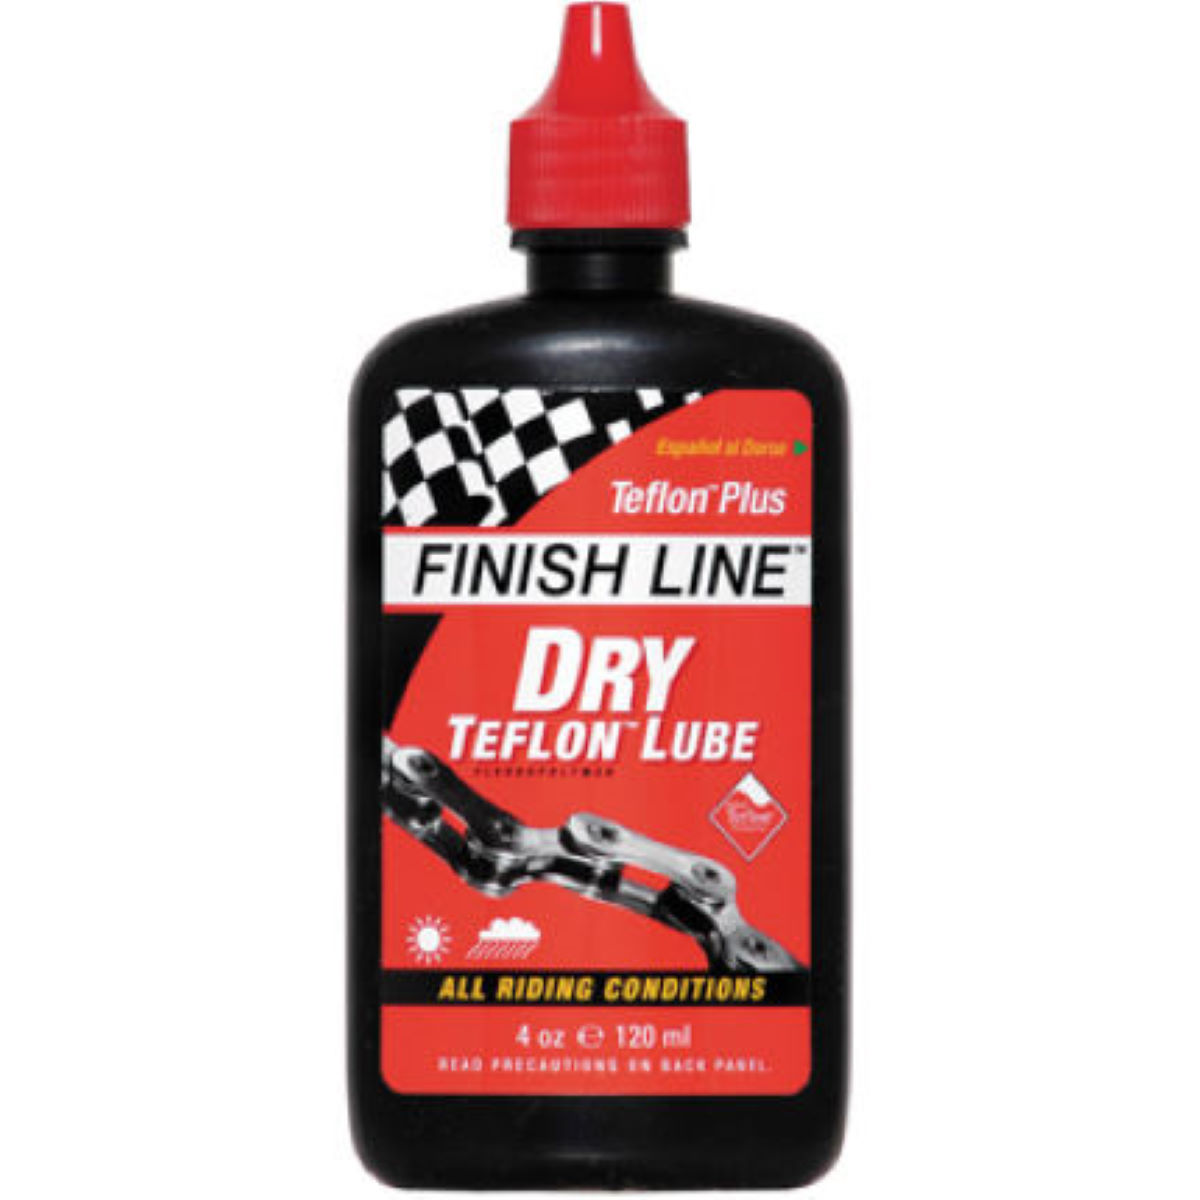 Lubrifiant Finish Line Dry Teflon (120 ml) - 120ml Lubrifiants